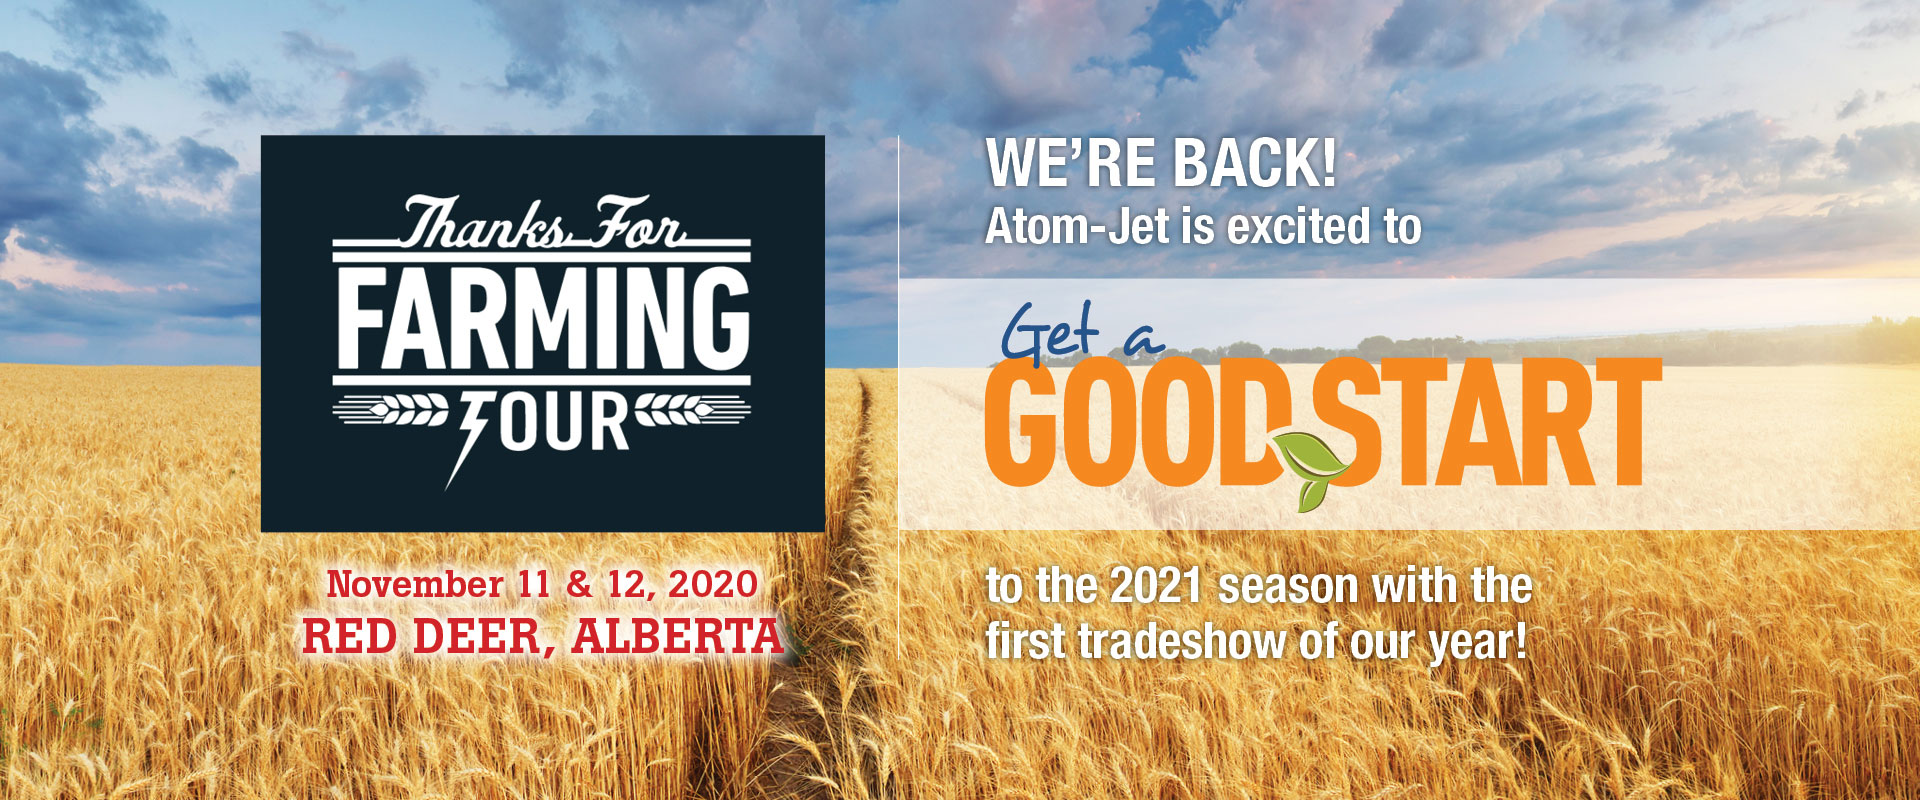 We're Back! Atom-Jet is excited to Get a Good Start to the 2021 season with the first trade show of our year!